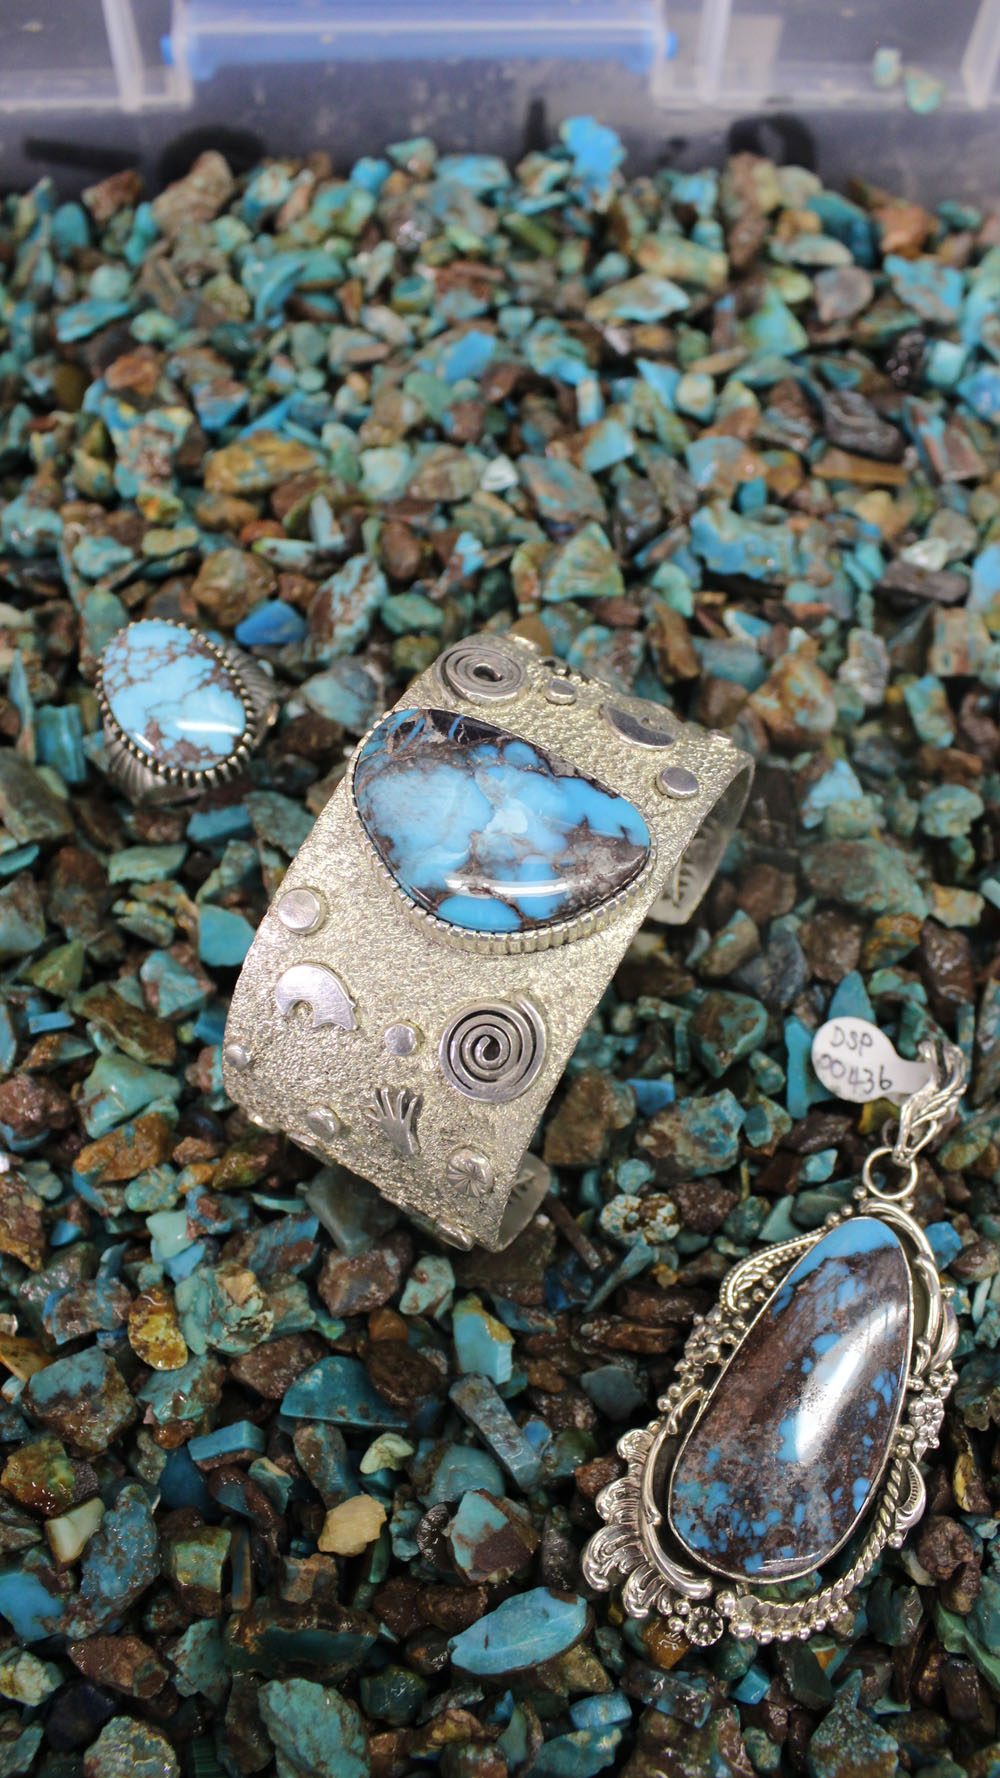 Bisbee Turquoise Jewelry in Bisbee rough